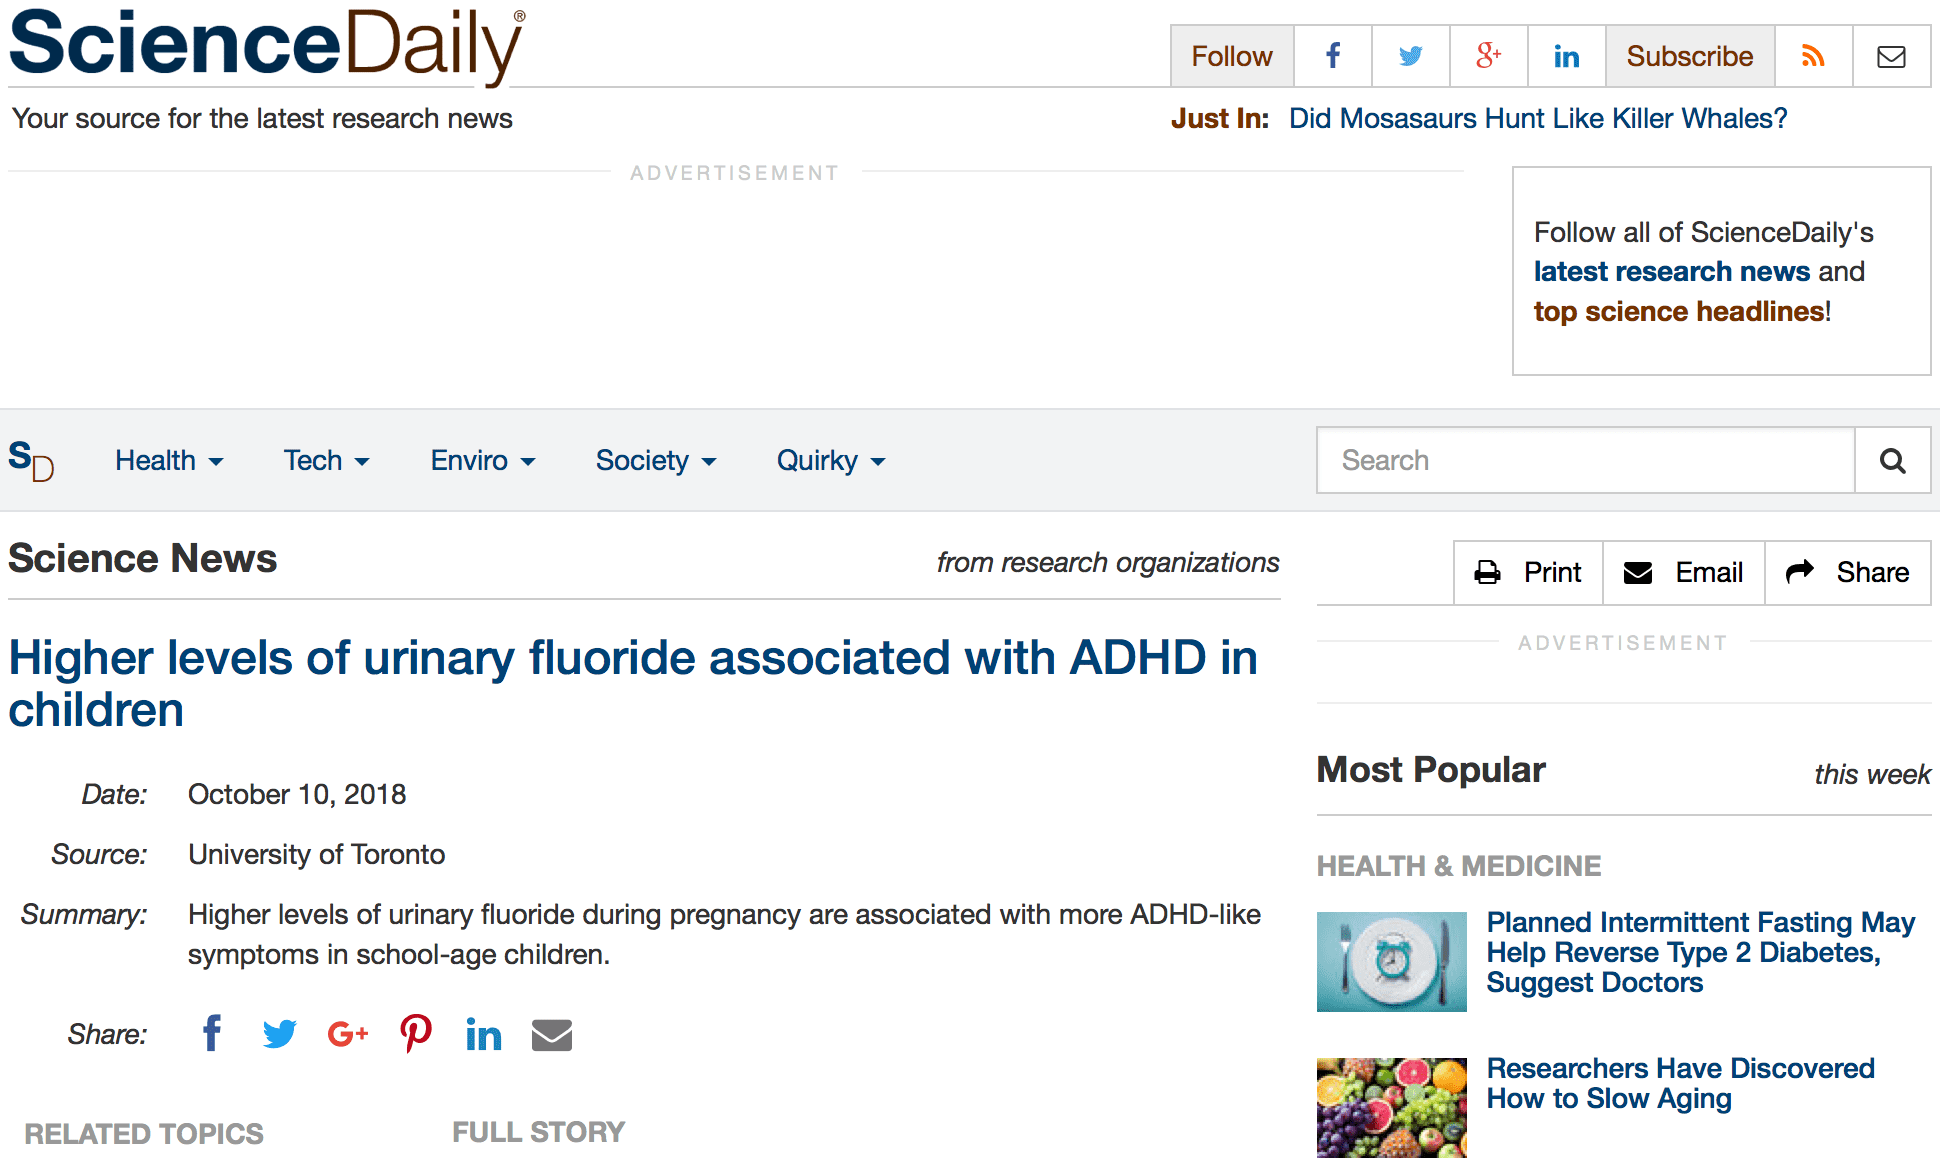 Higher Levels Of Urinary Fluoride >> Higher Levels Of Urinary Fluoride Associated With Adhd In Children